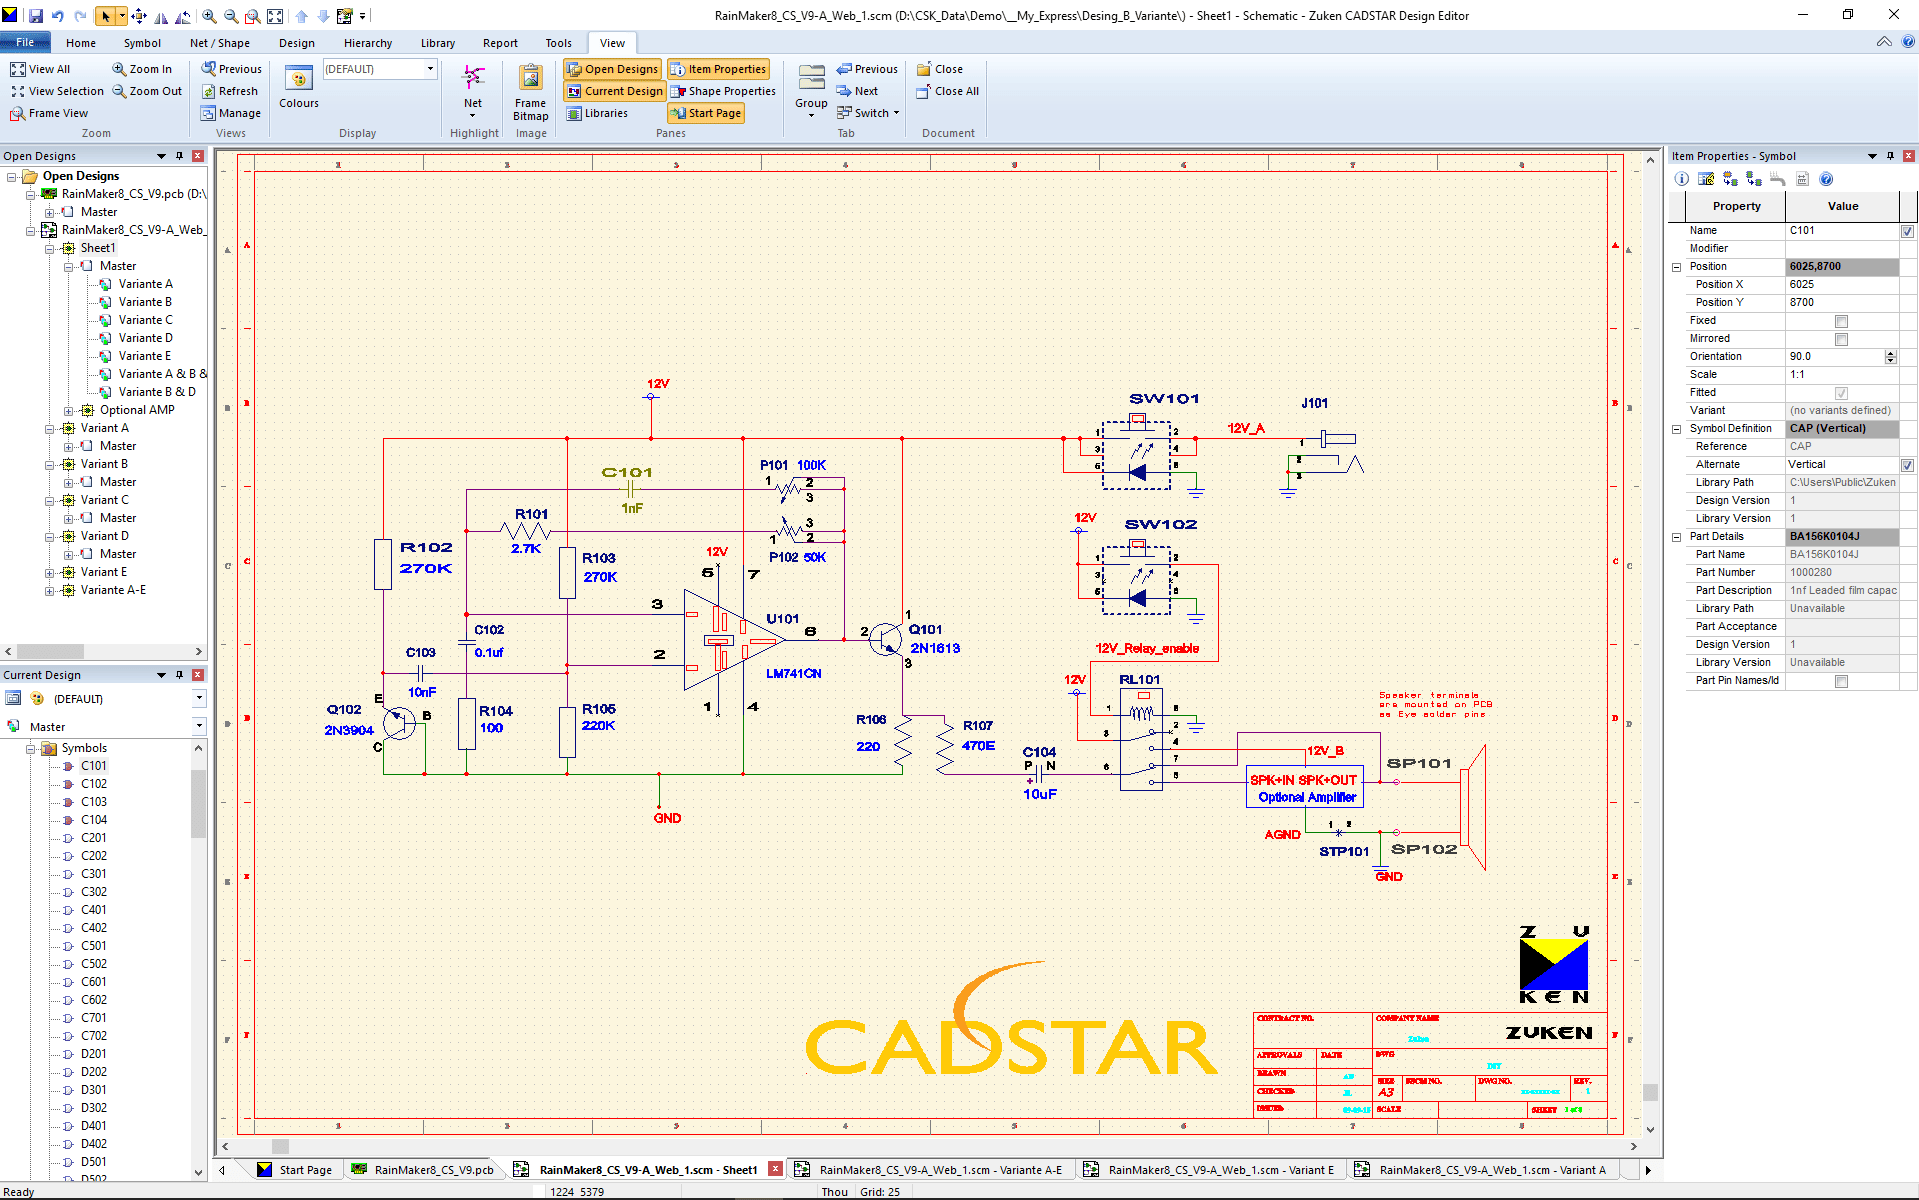 3D Promotion pcb design software cadstar basic schematics variants Master SCM view